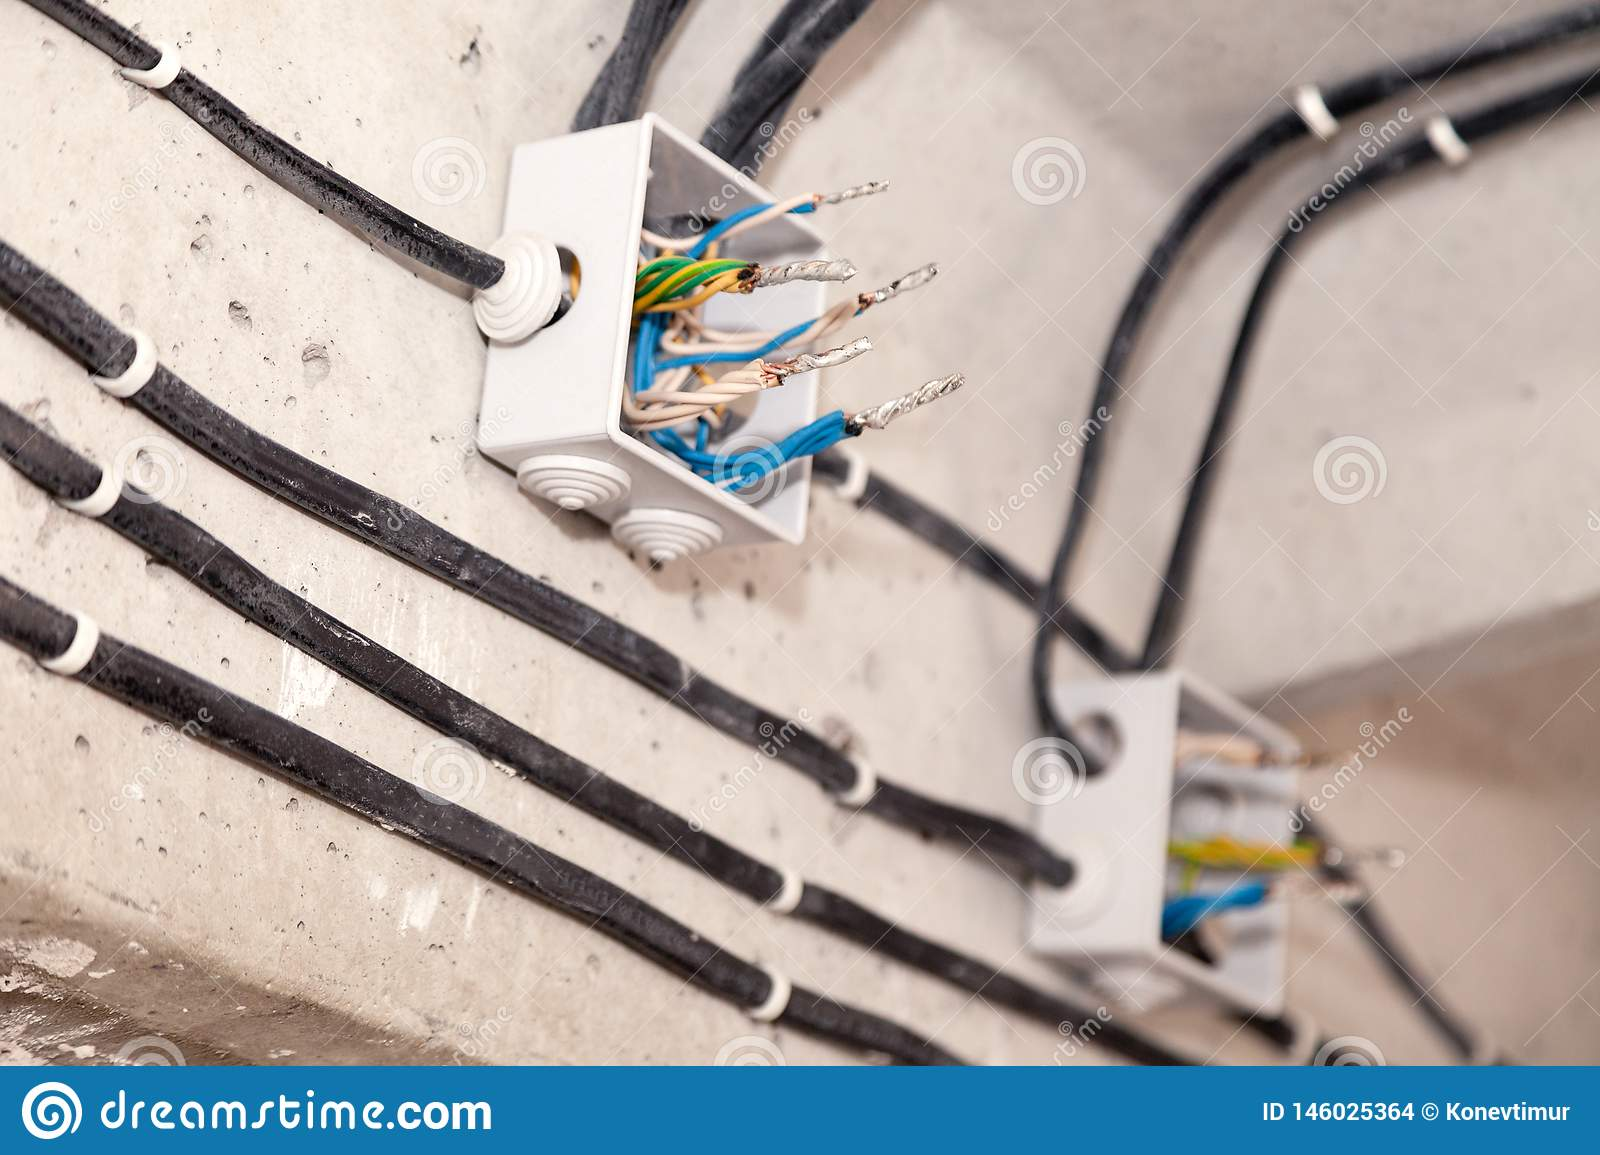 Cable Laying Ceiling  Electrical Wires On Wall  Wiring